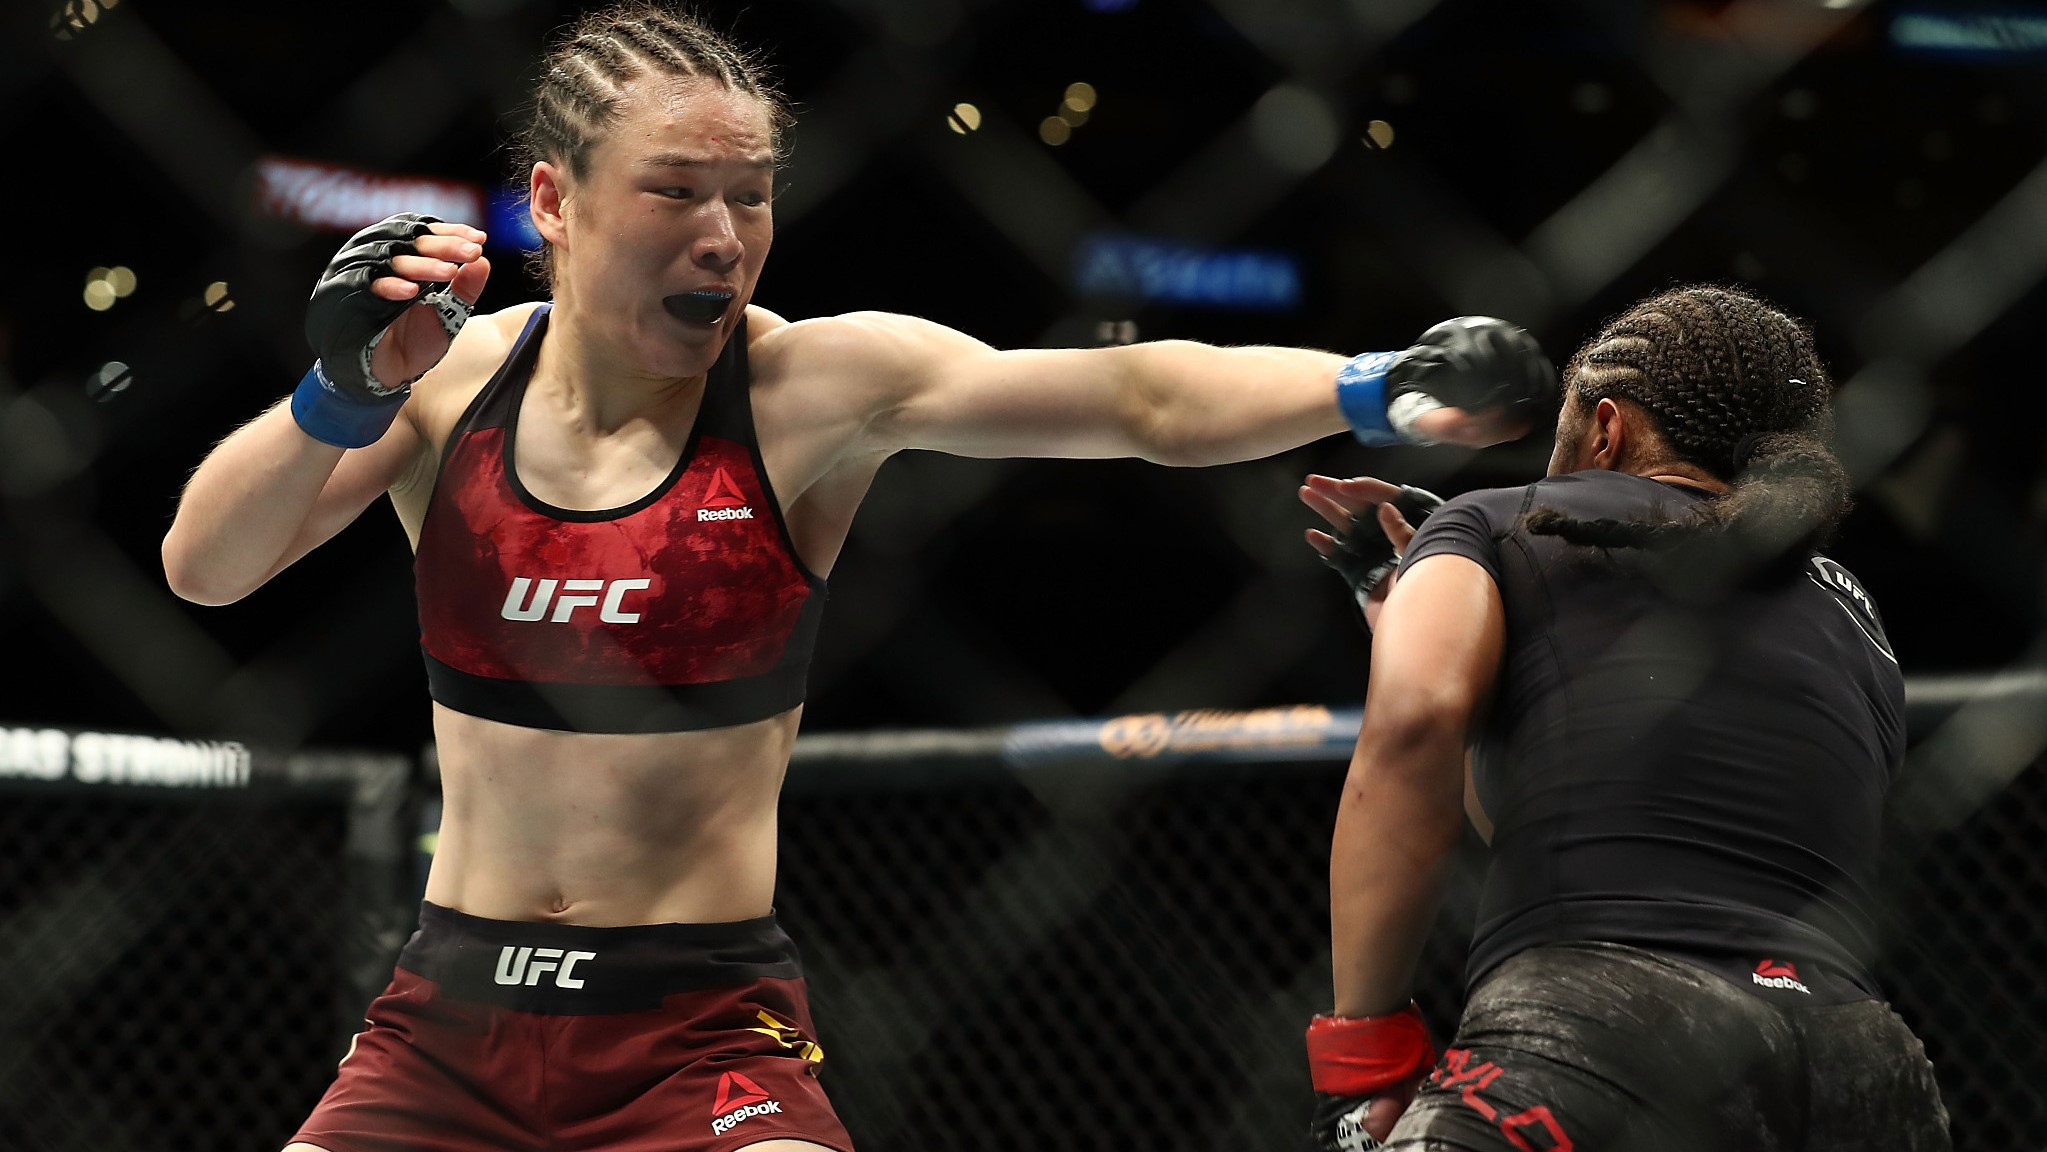 Chinese MMA fighter Zhang Weili battles obstacles into UFC, wins